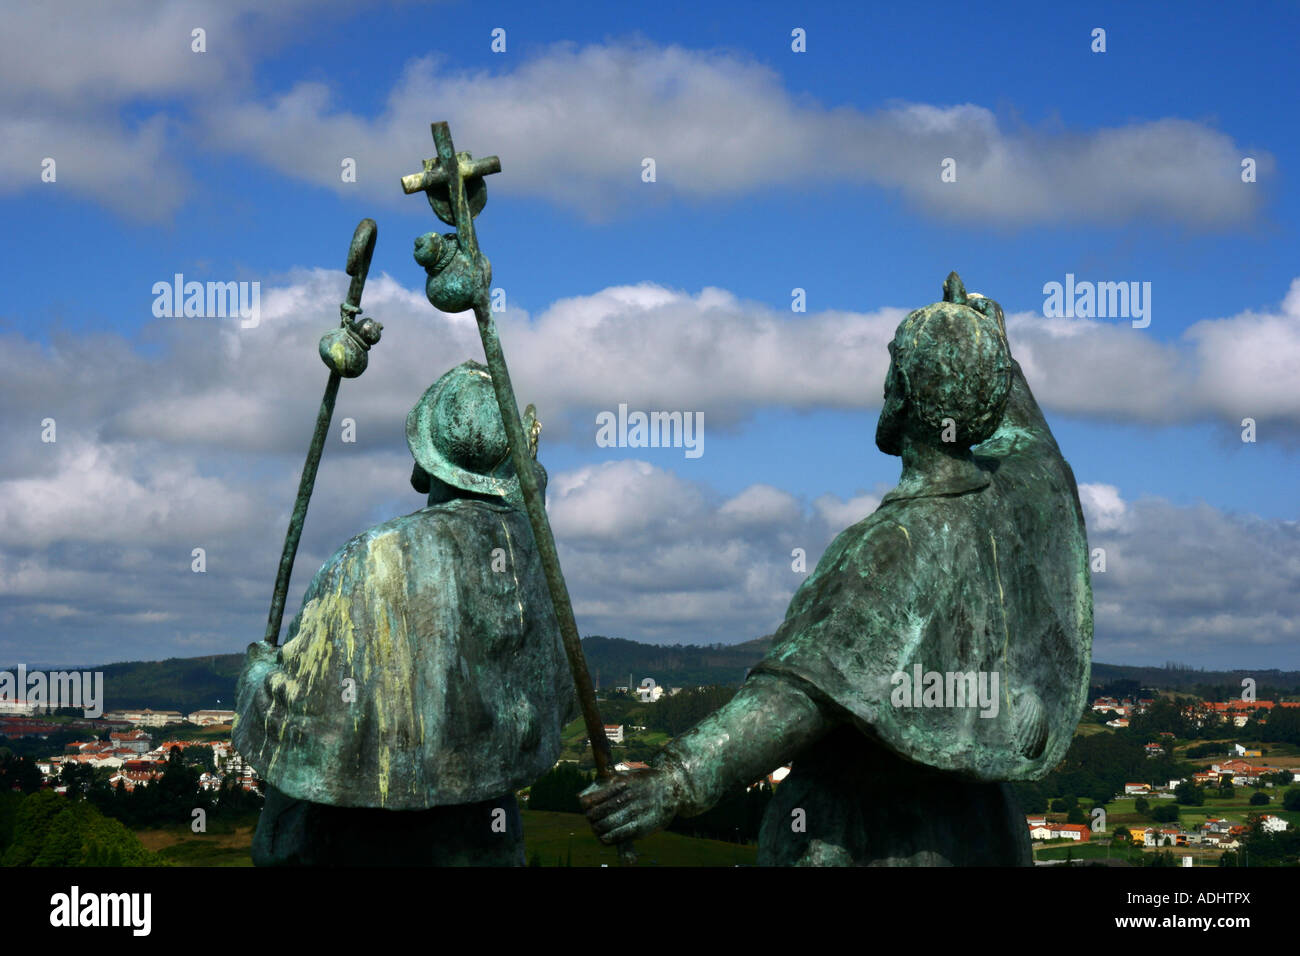 Sculpture of two pilgrims happy to see Santiago de Compostela from the Monte do Gozo at the end of their journey - Stock Image